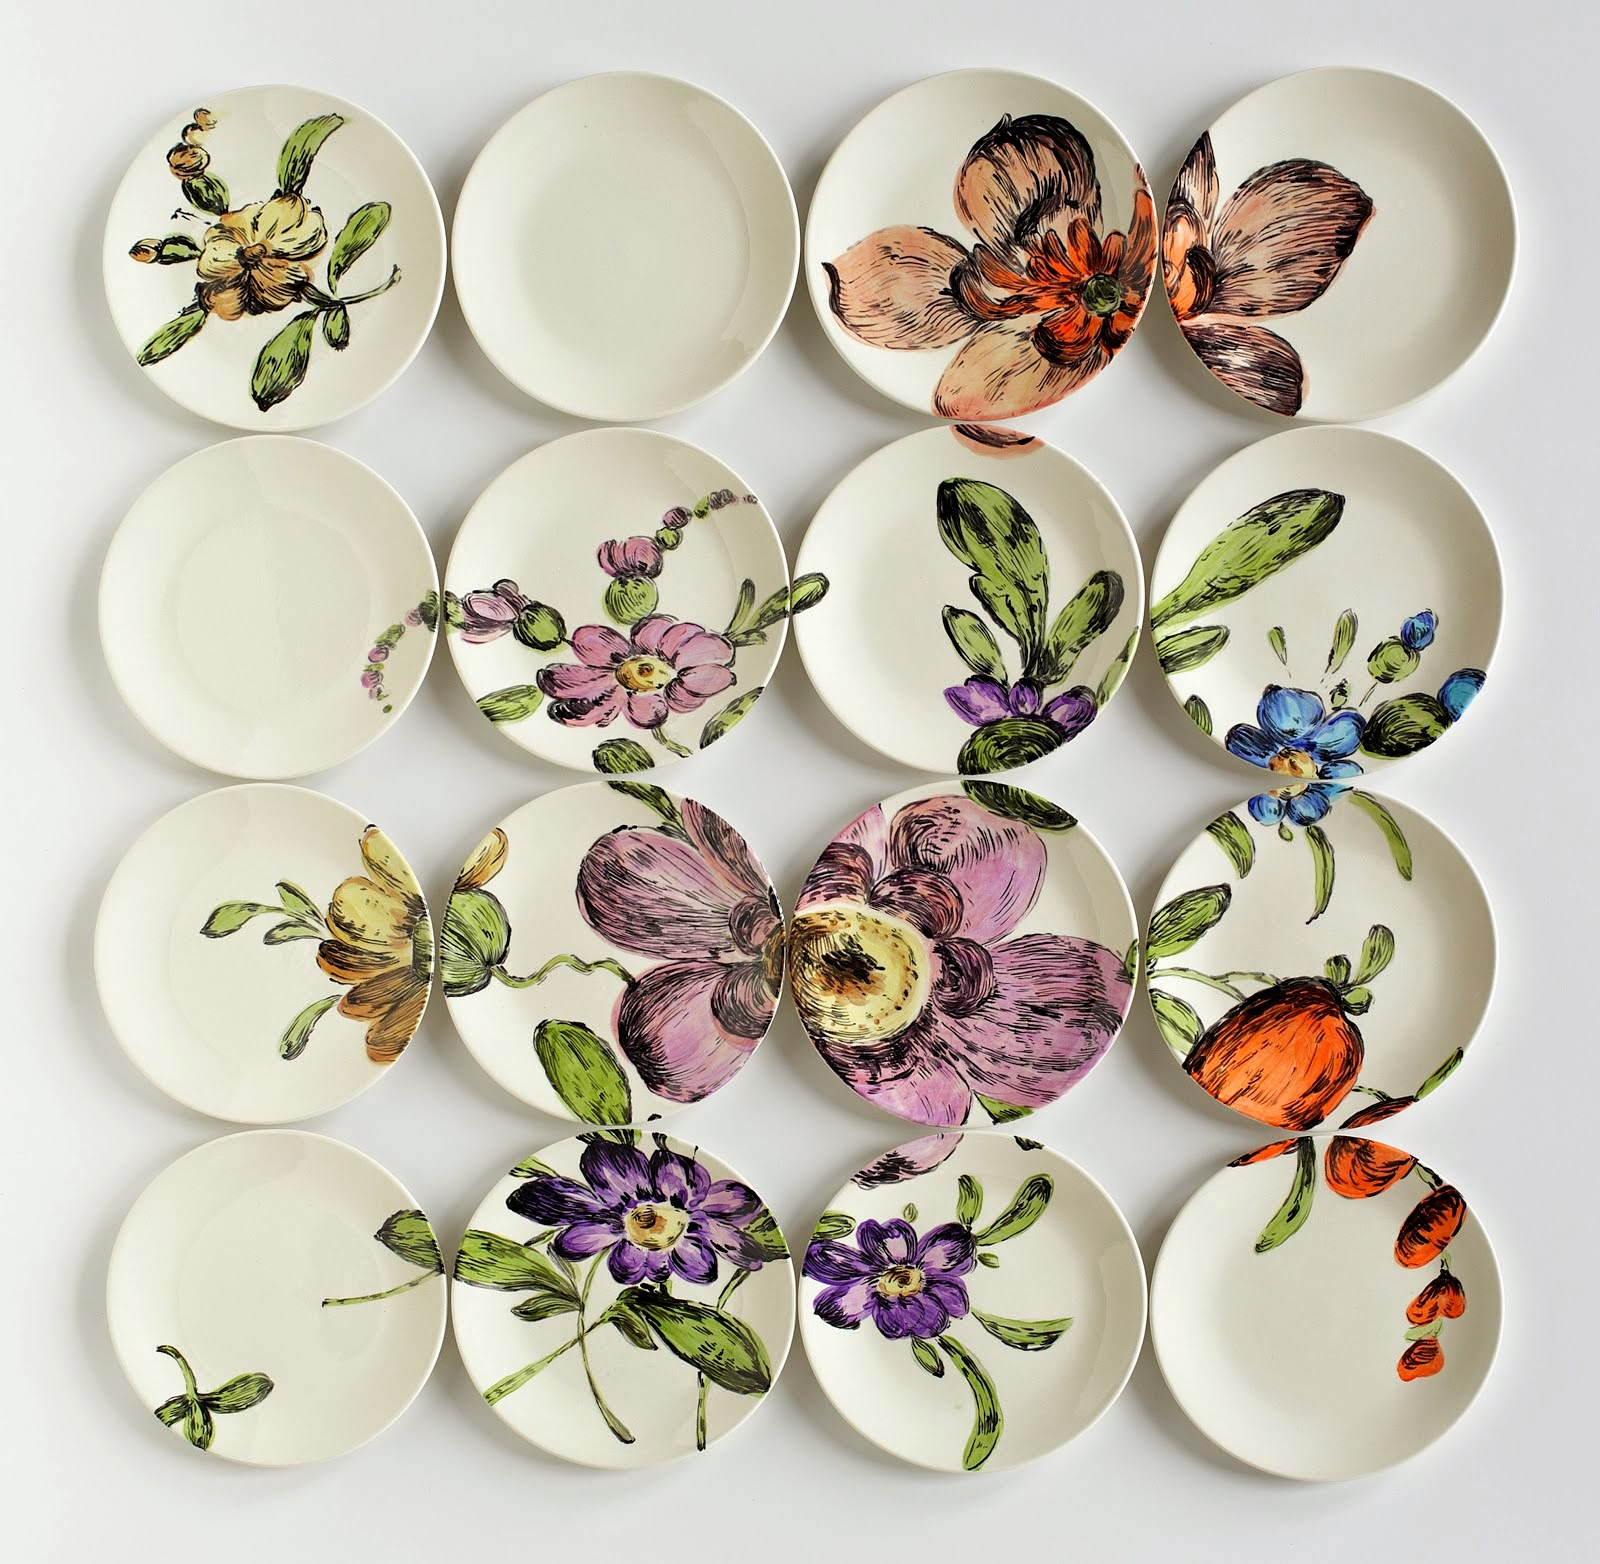 Simply Creative Ceramic Plate Installations By Molly Hatch